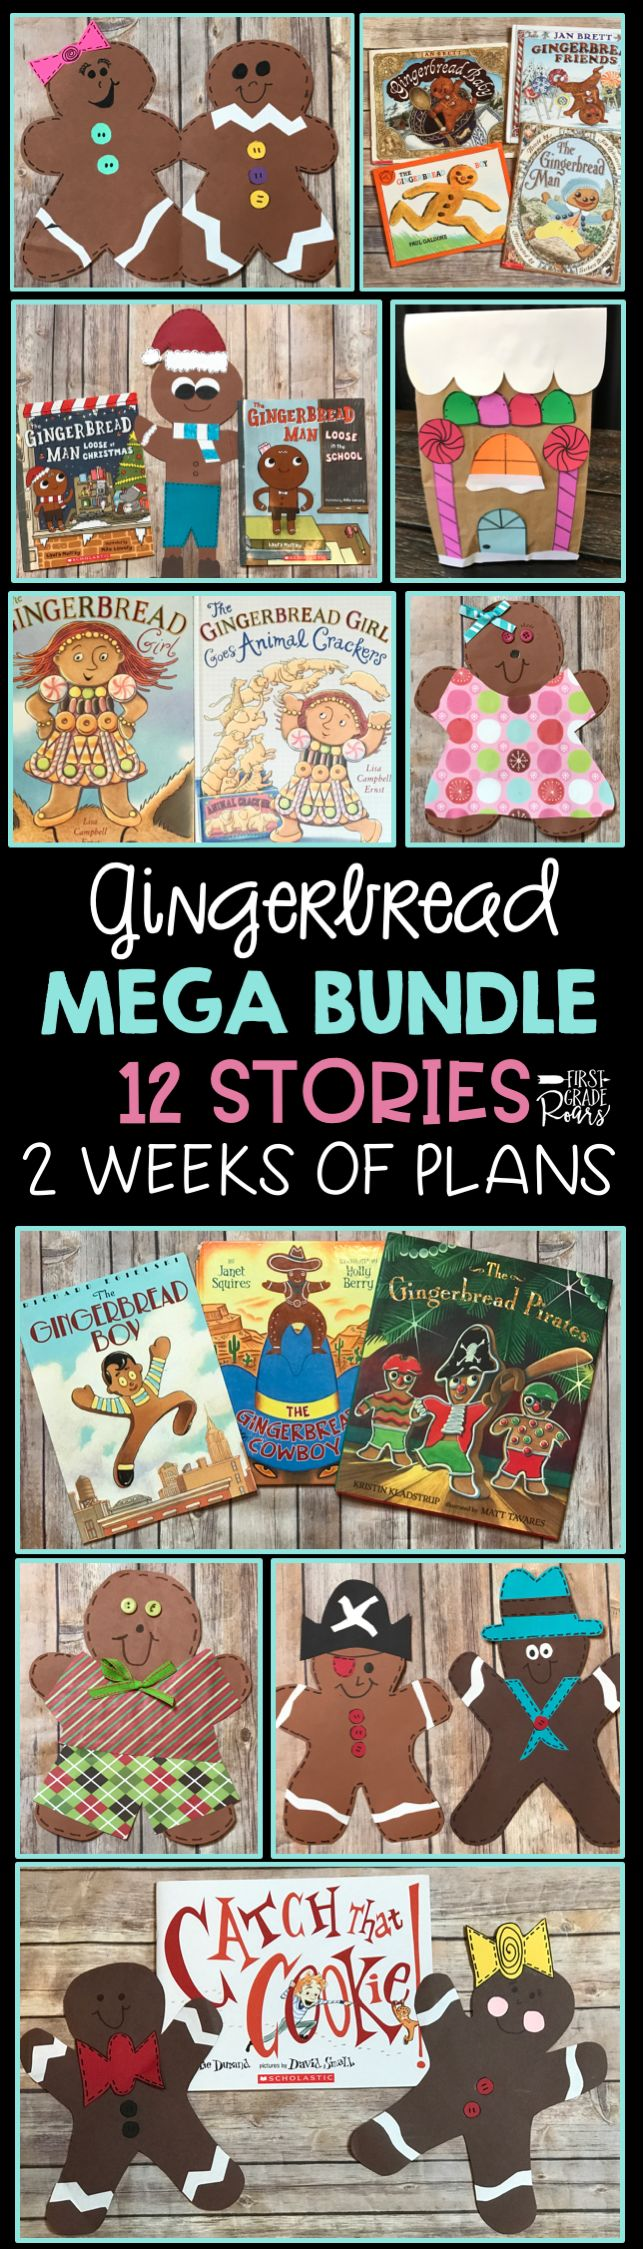 This gingerbread bundle was created for 2 weeks of fun. It includes 12 different stories with lesson plans for each story. Colorful posters are included to teach sequencing, characters, compare and contrast, and more. There are over 400 pages of fun with 7 different gingerbread crafts. Reading strategies, and writing included. This is the perfect unit for guided reading in kindergarten, first grade or second grade.  It is also part of my MEGA 40 week bundle Guided Reading with a PURPOSE!